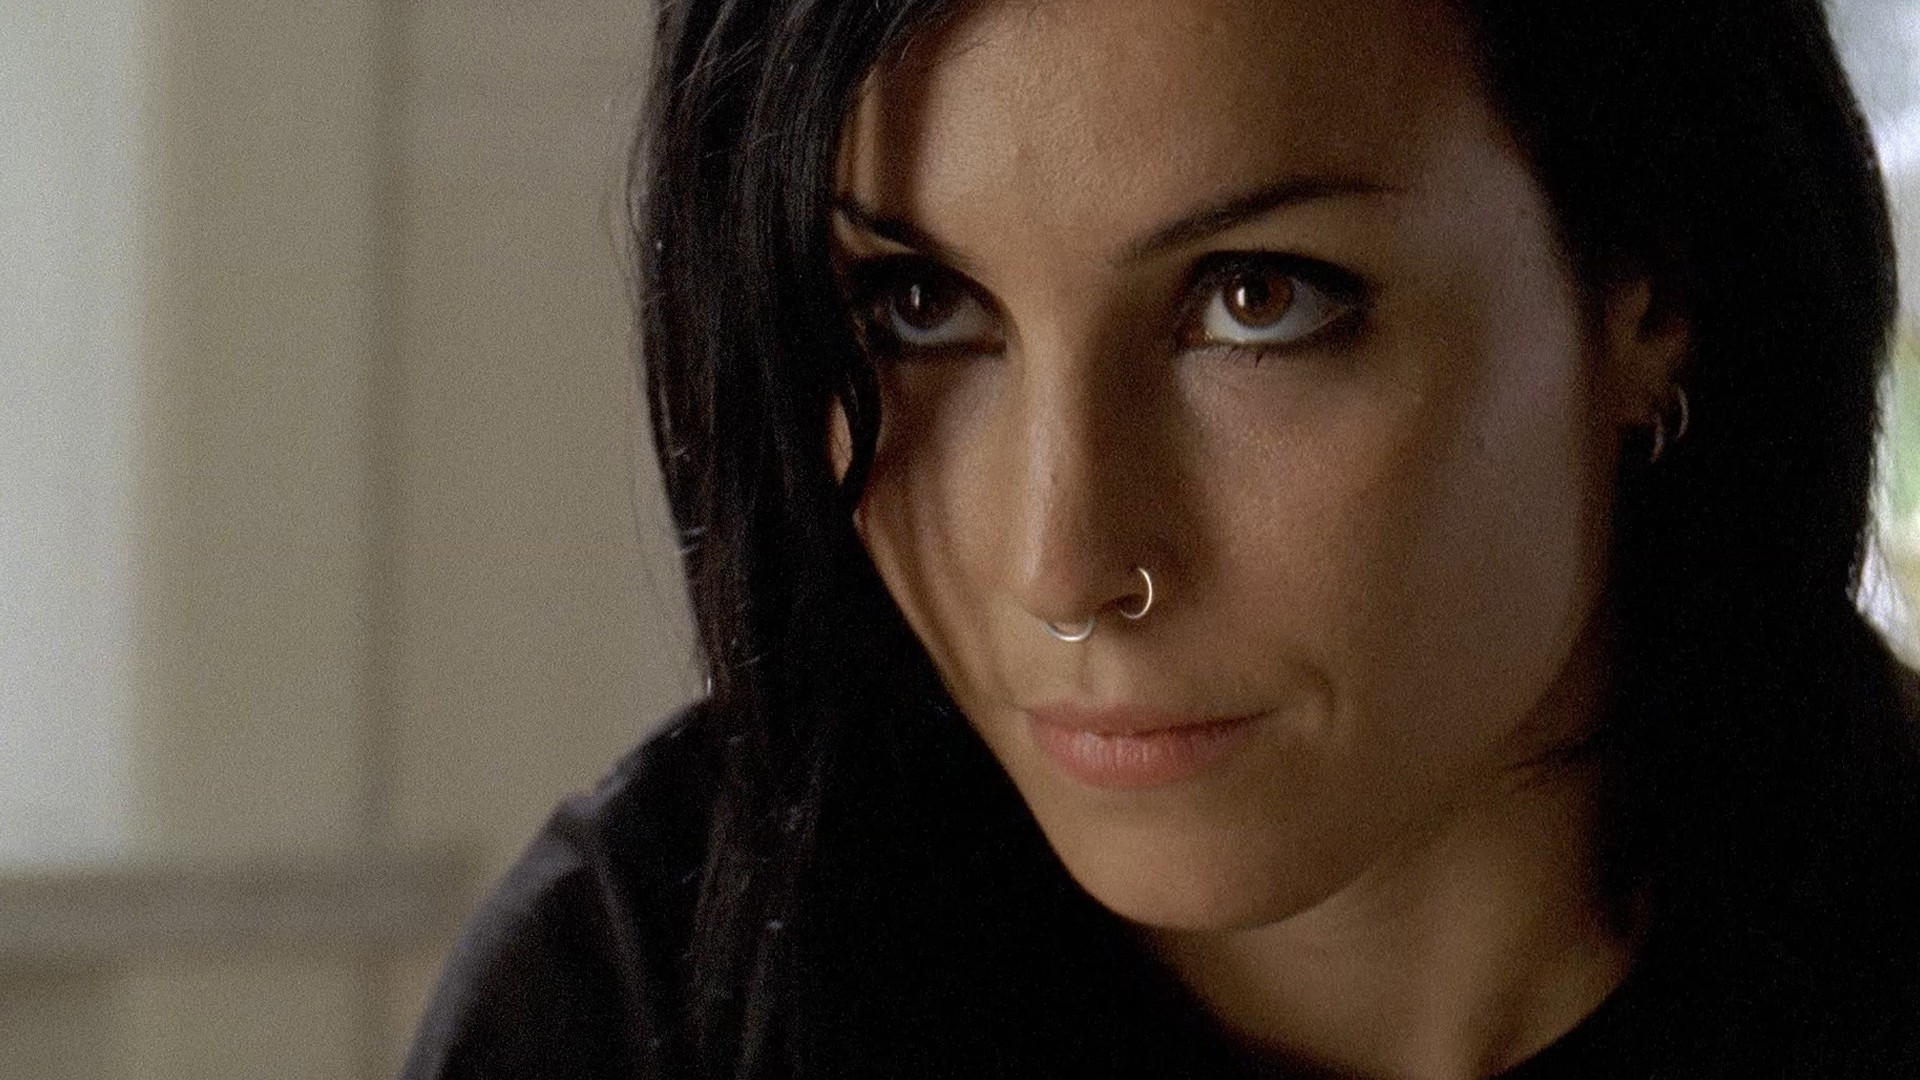 1920x1080 - Noomi Rapace Wallpapers 2